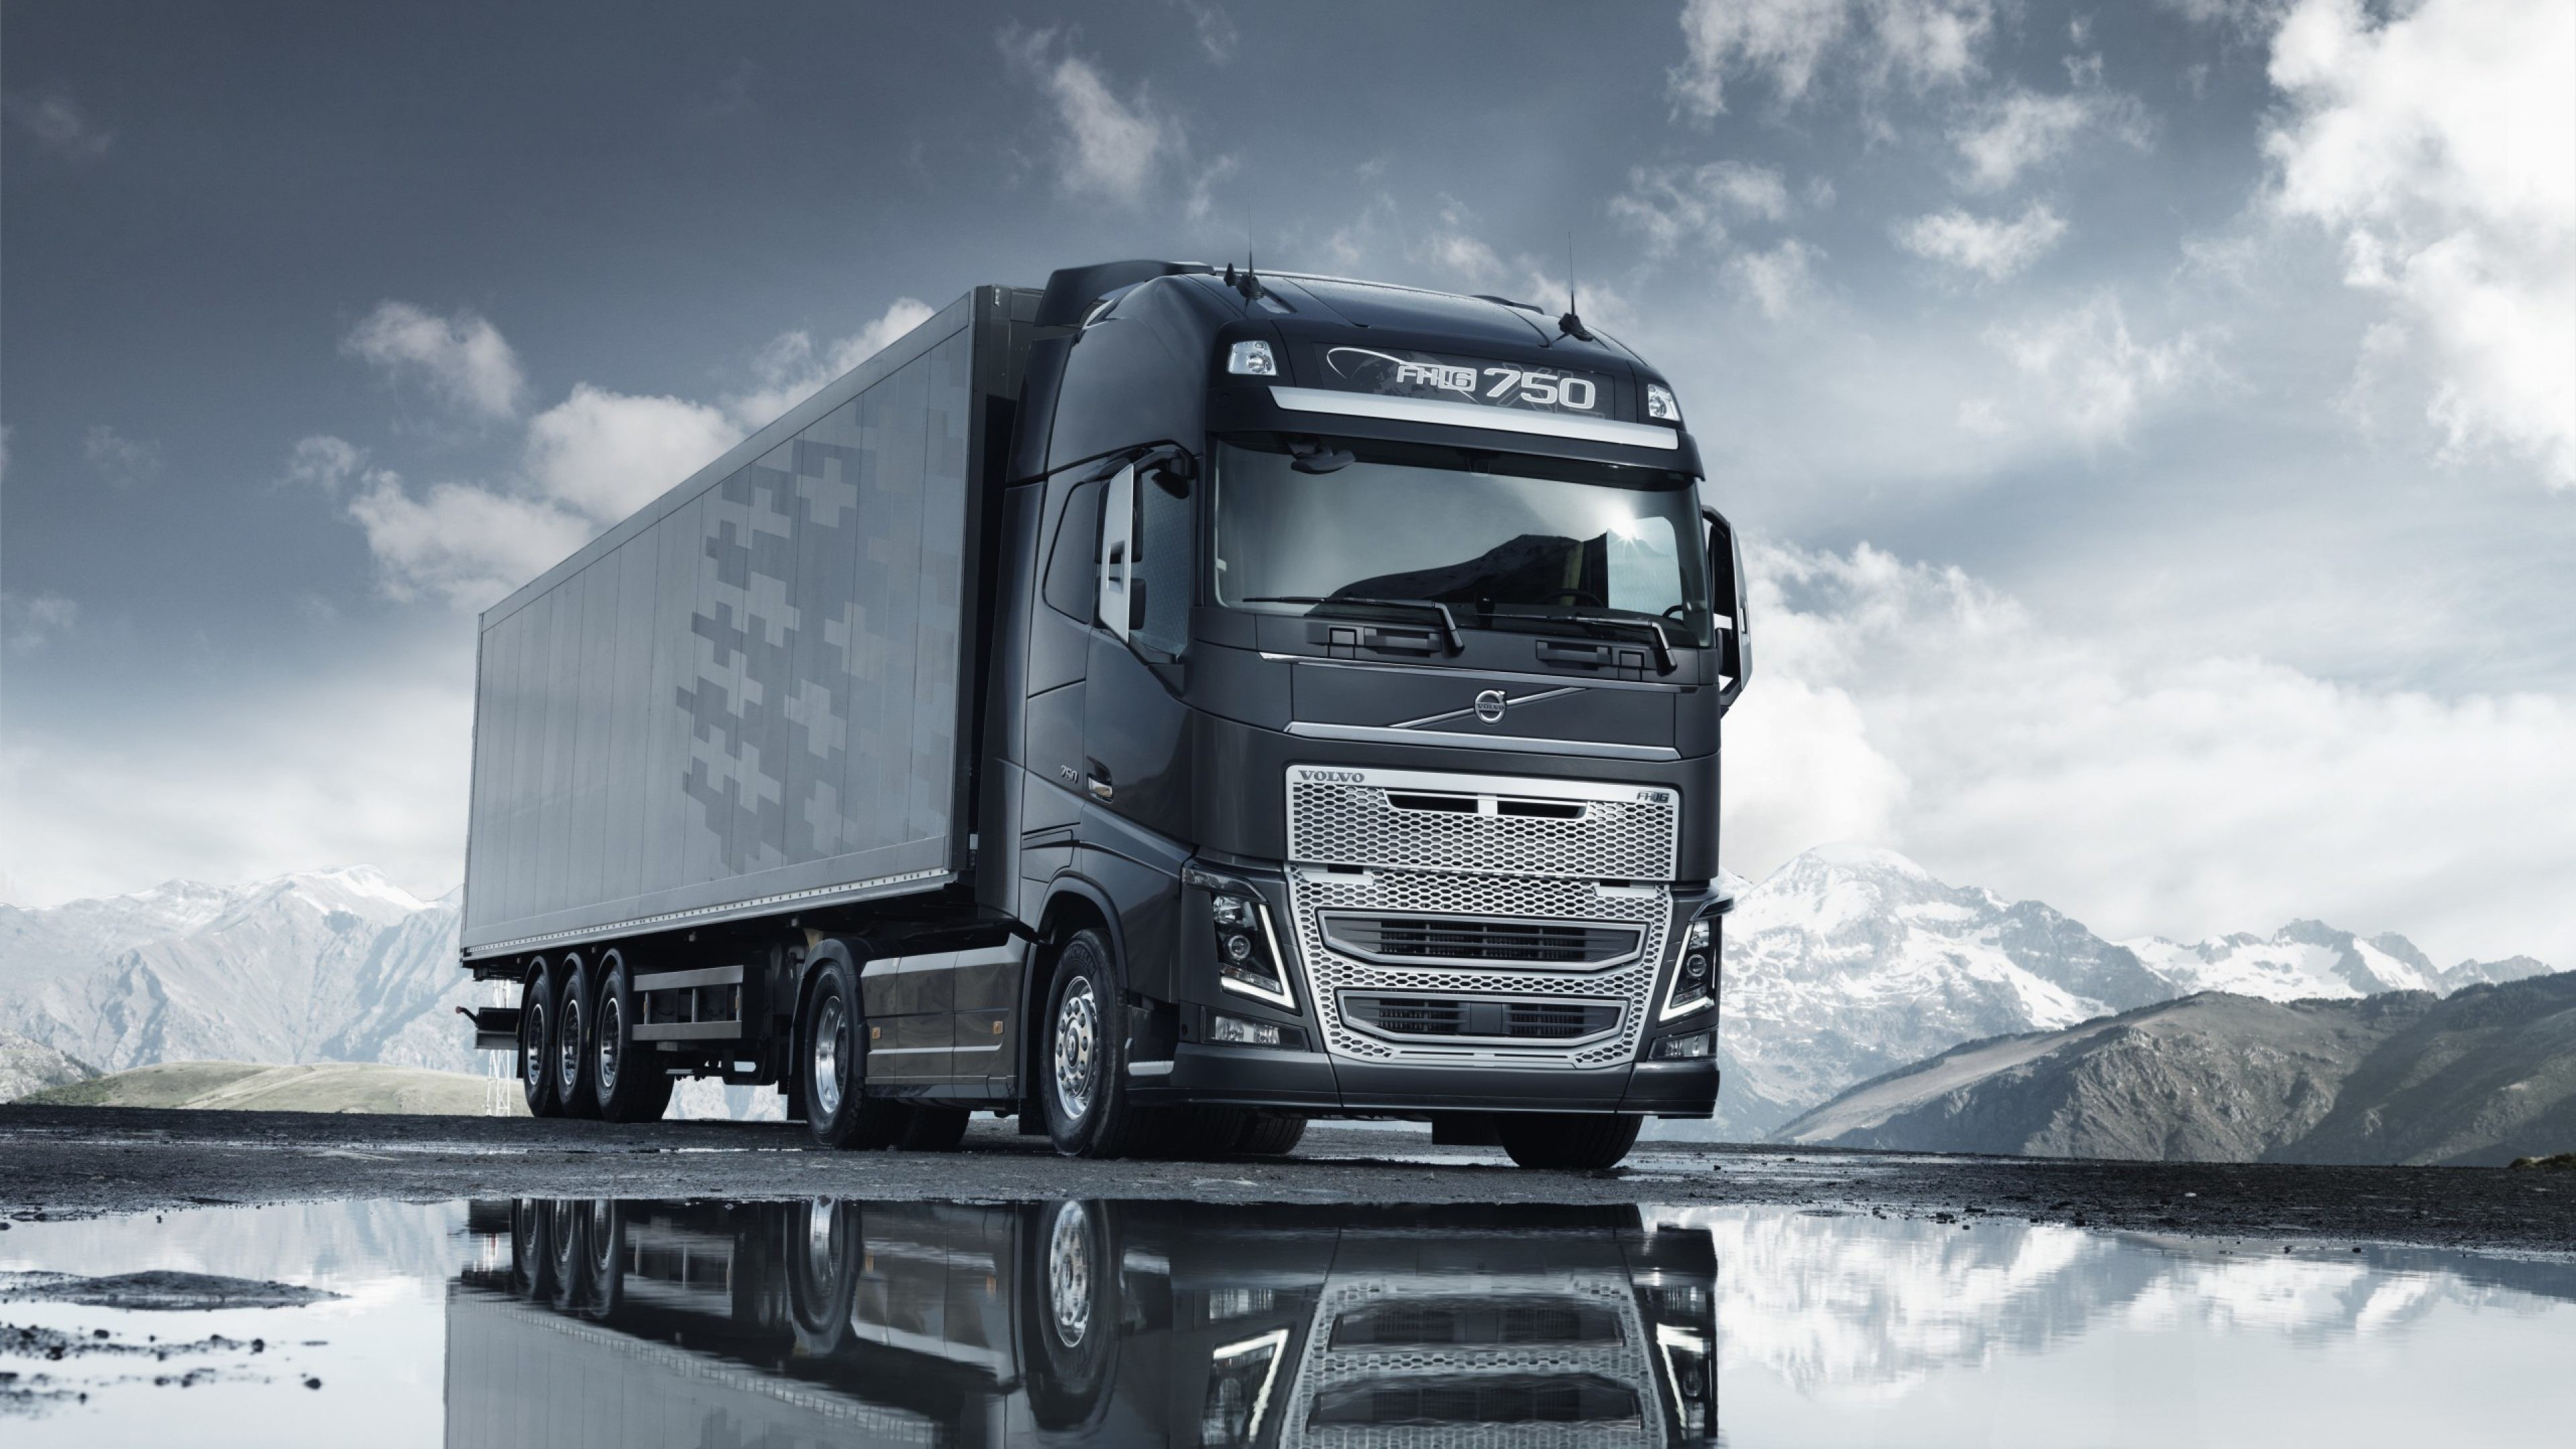 3840x2160 Volvo Semi Truck Wallpaper